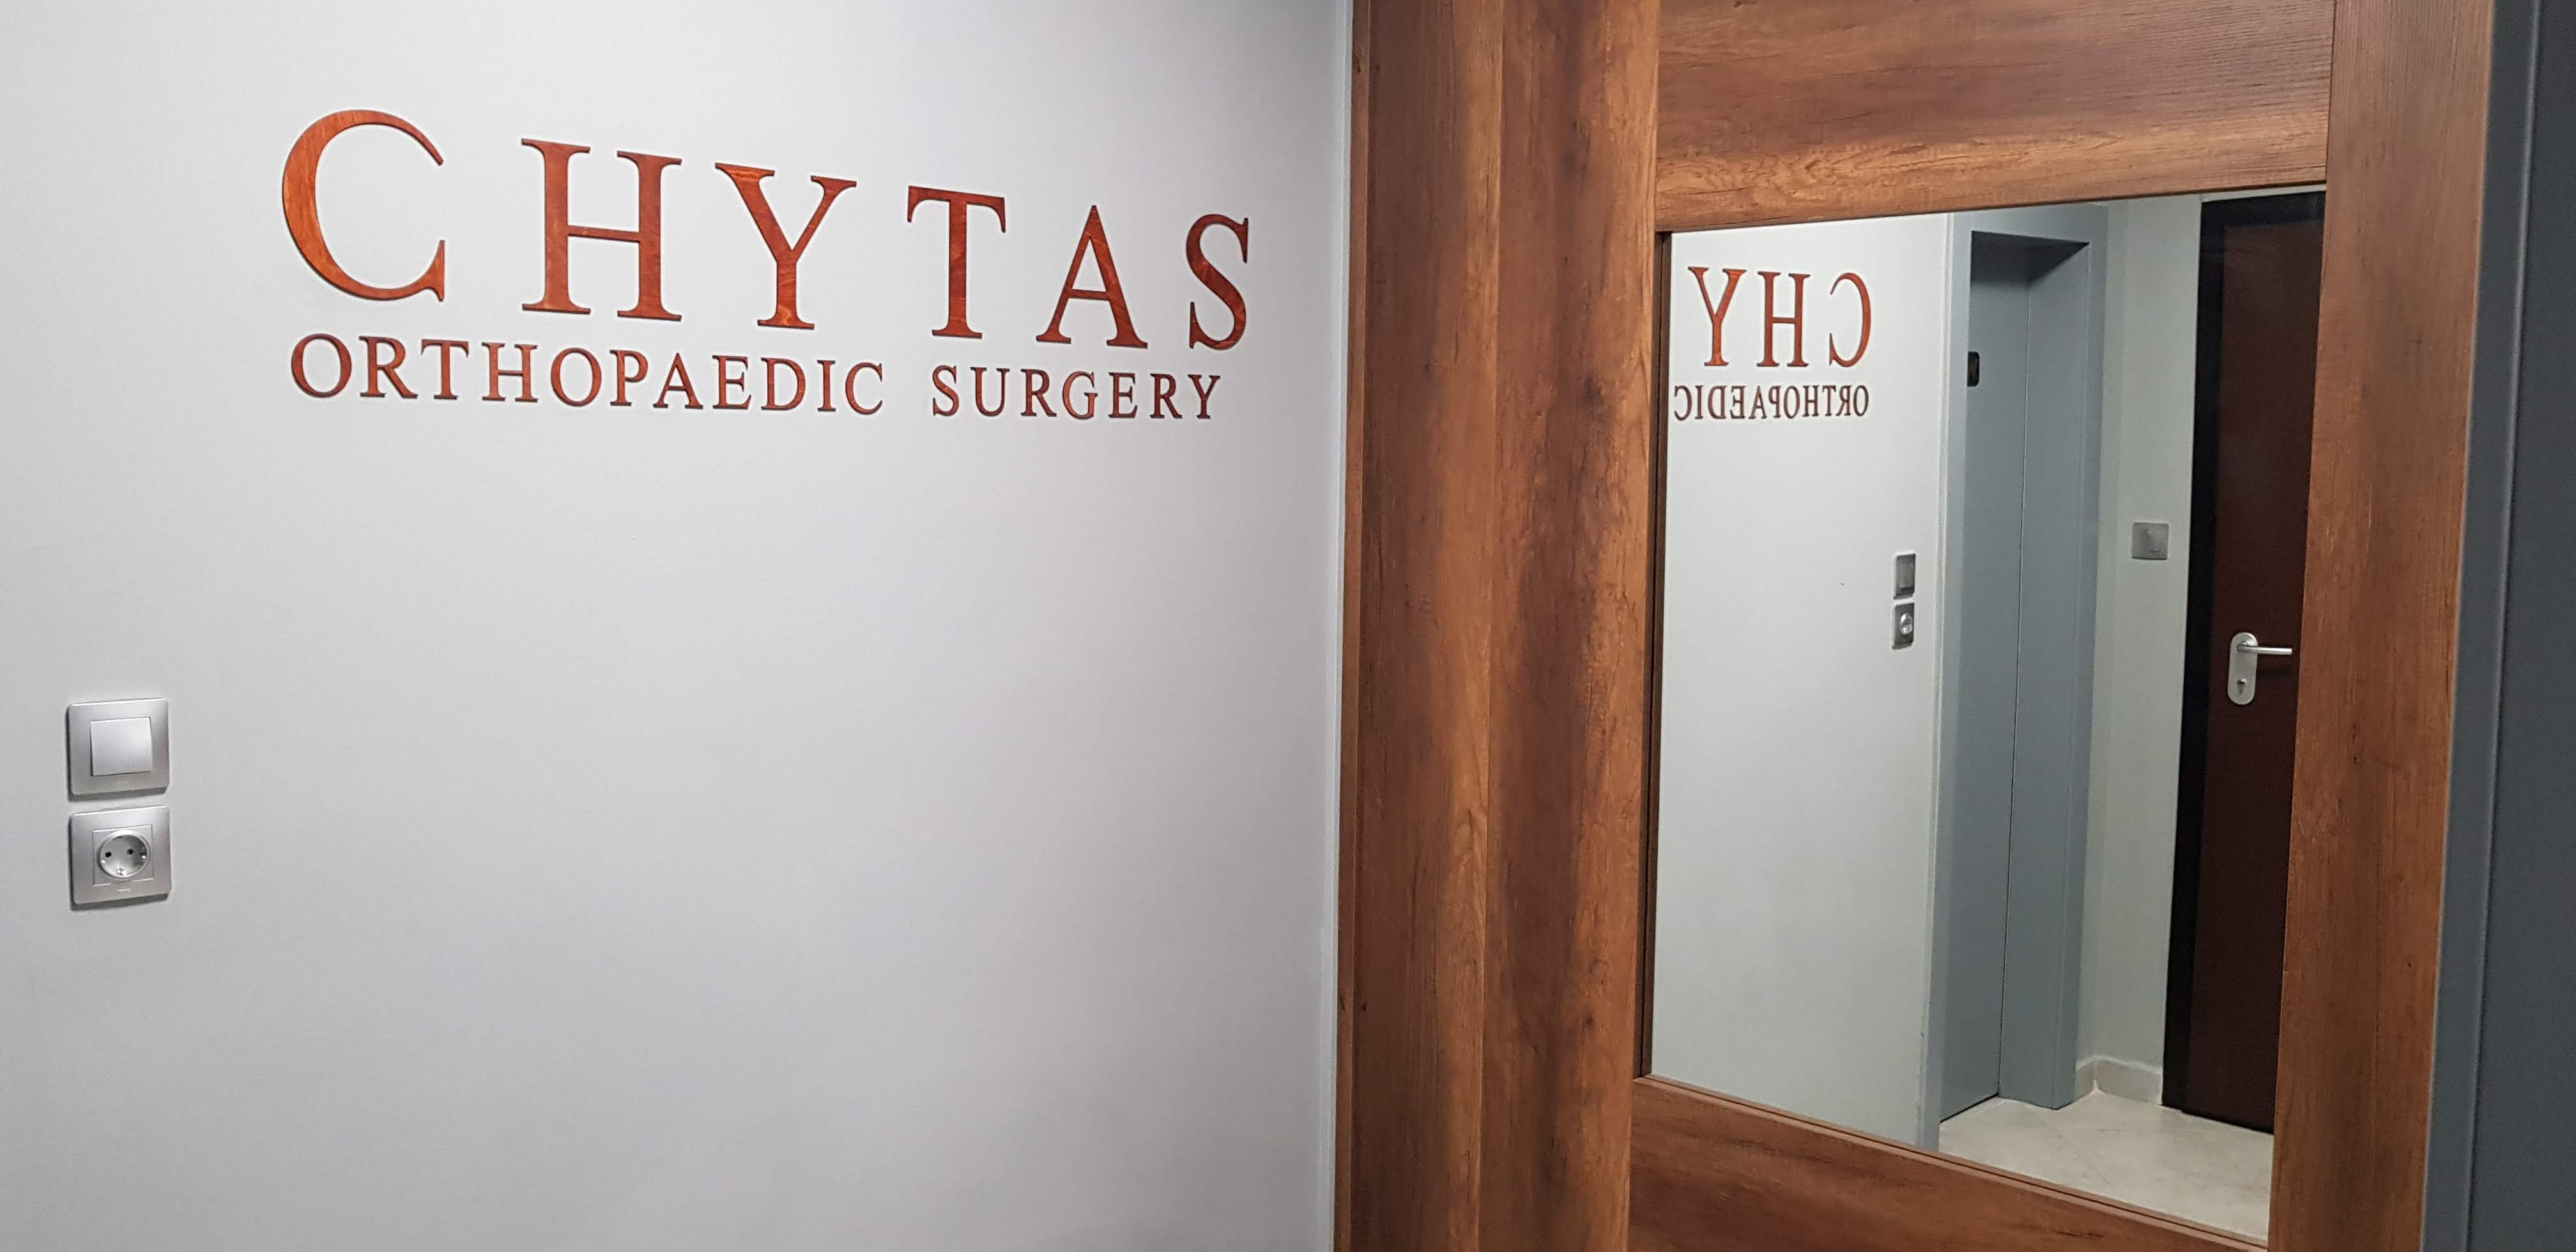 CHYTAS ORTHOPAEDIC SURGERY